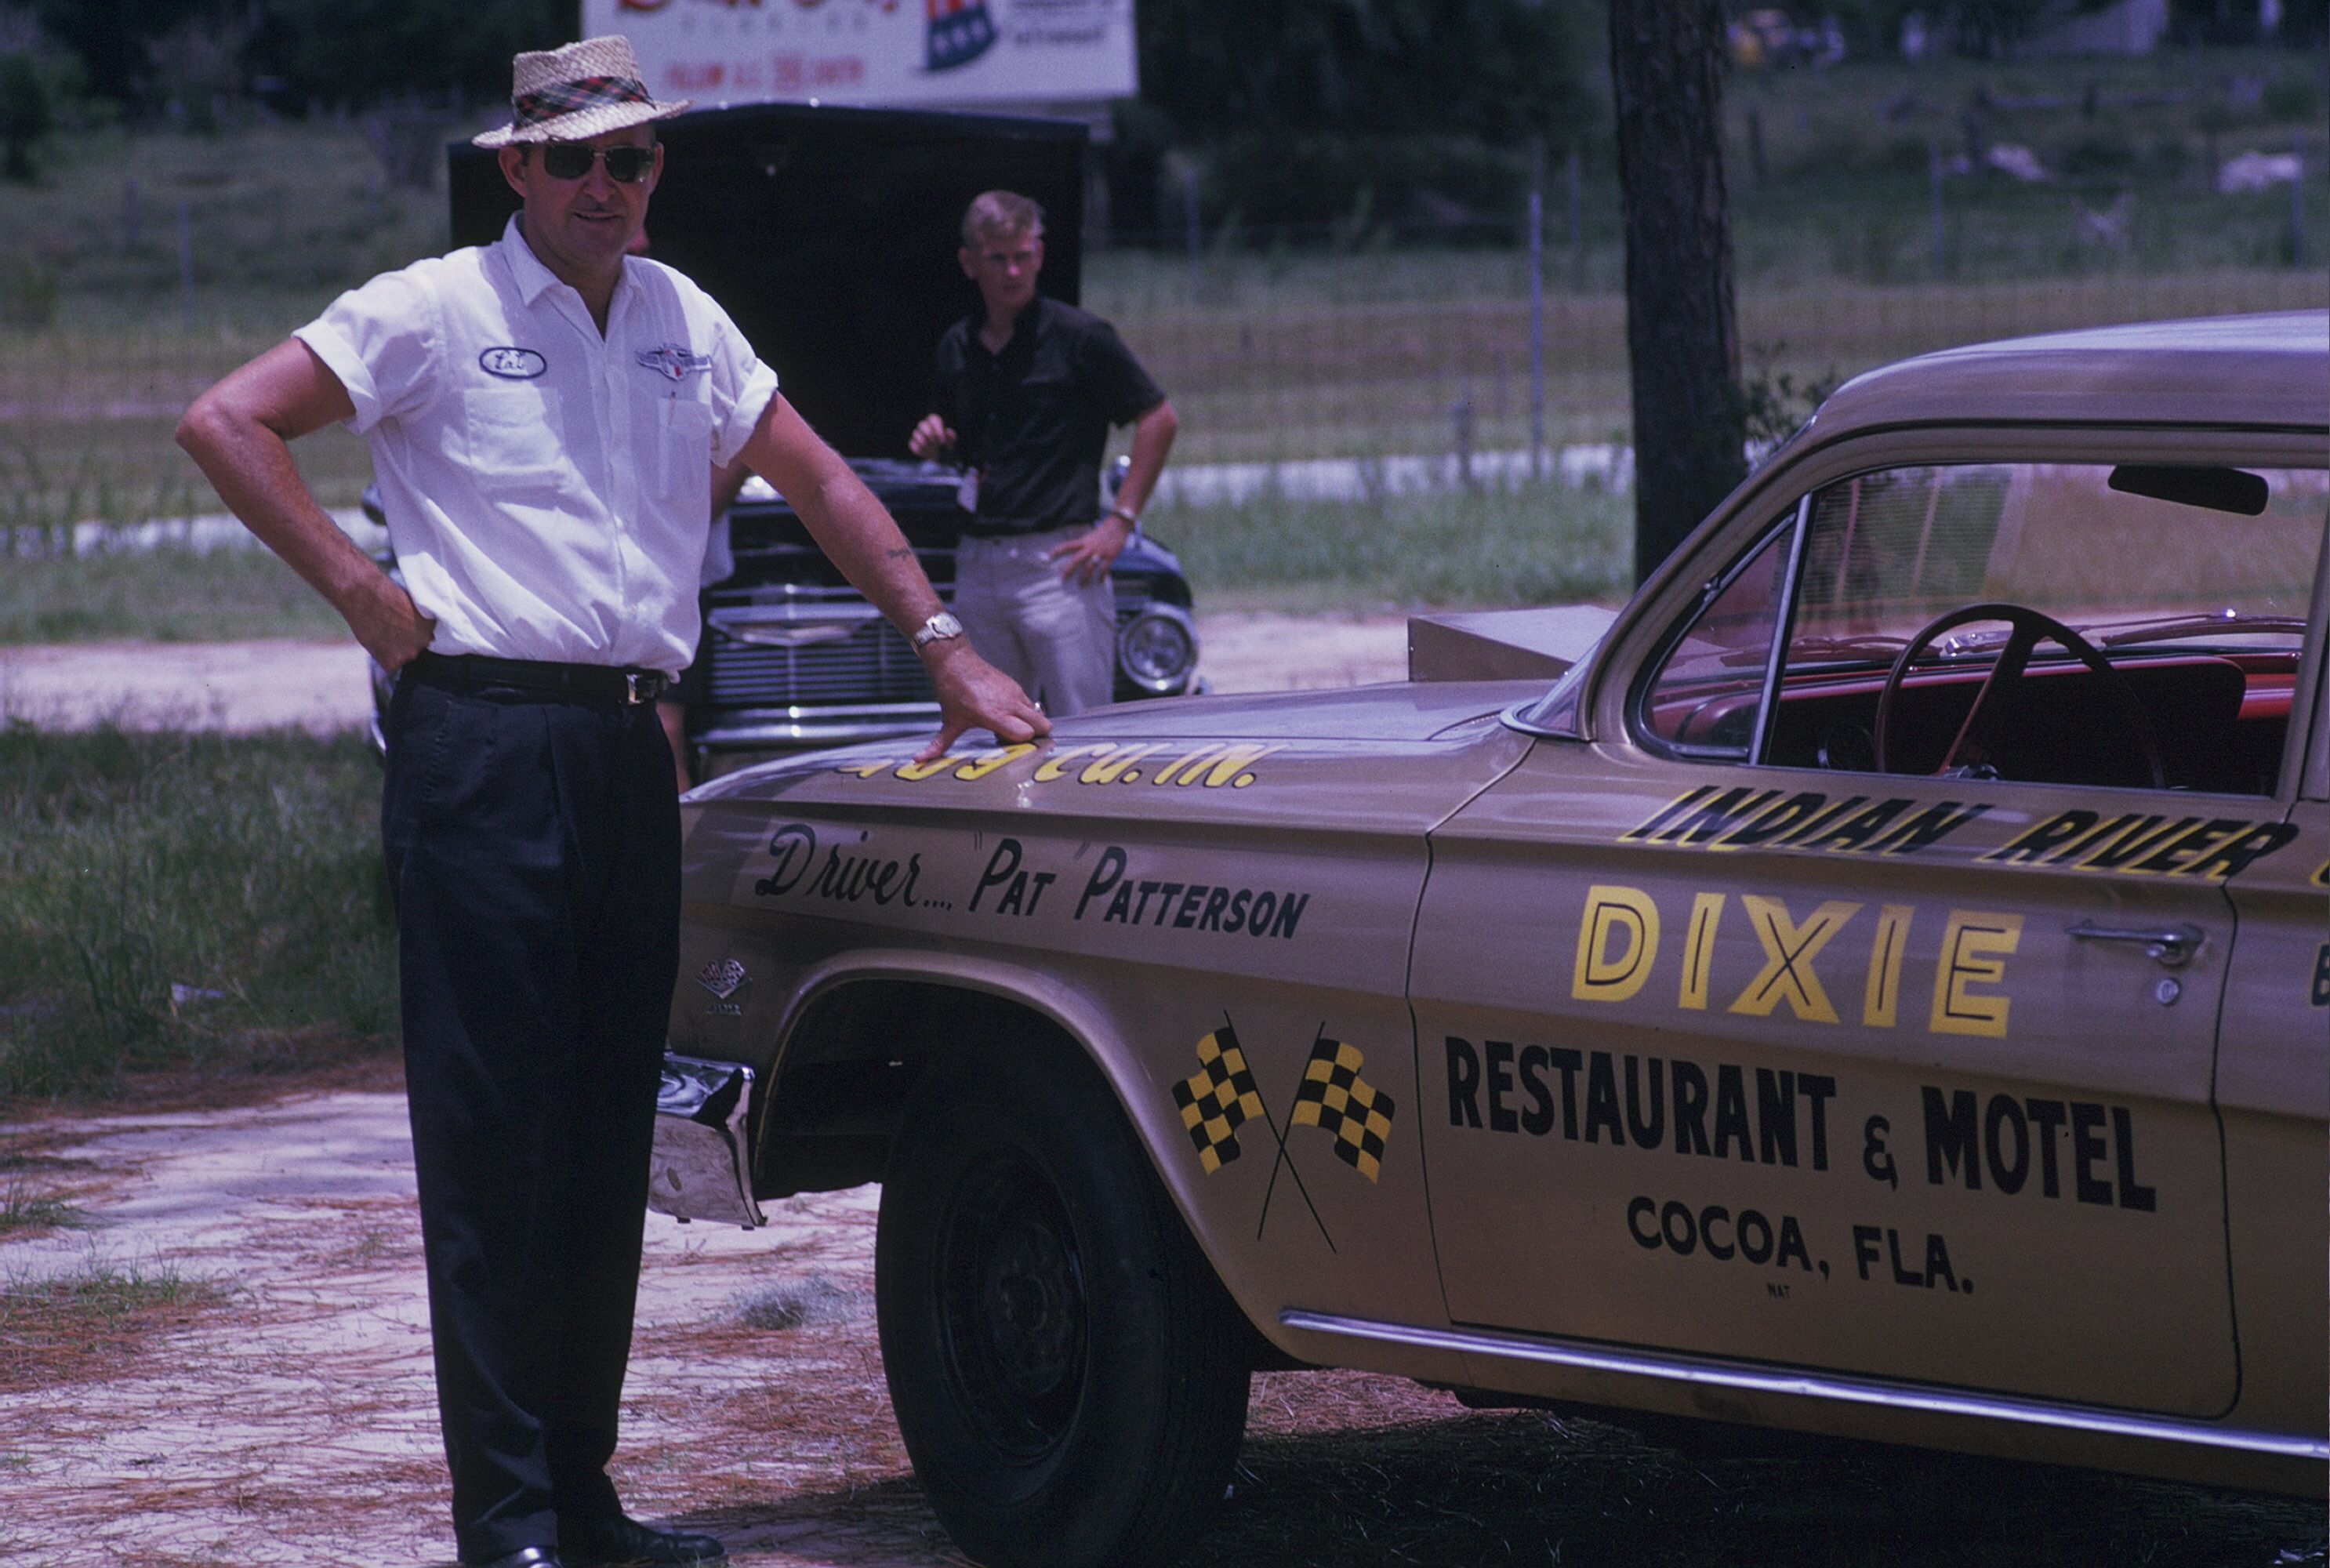 Pat Patterson was a local drag racer who raced this 409